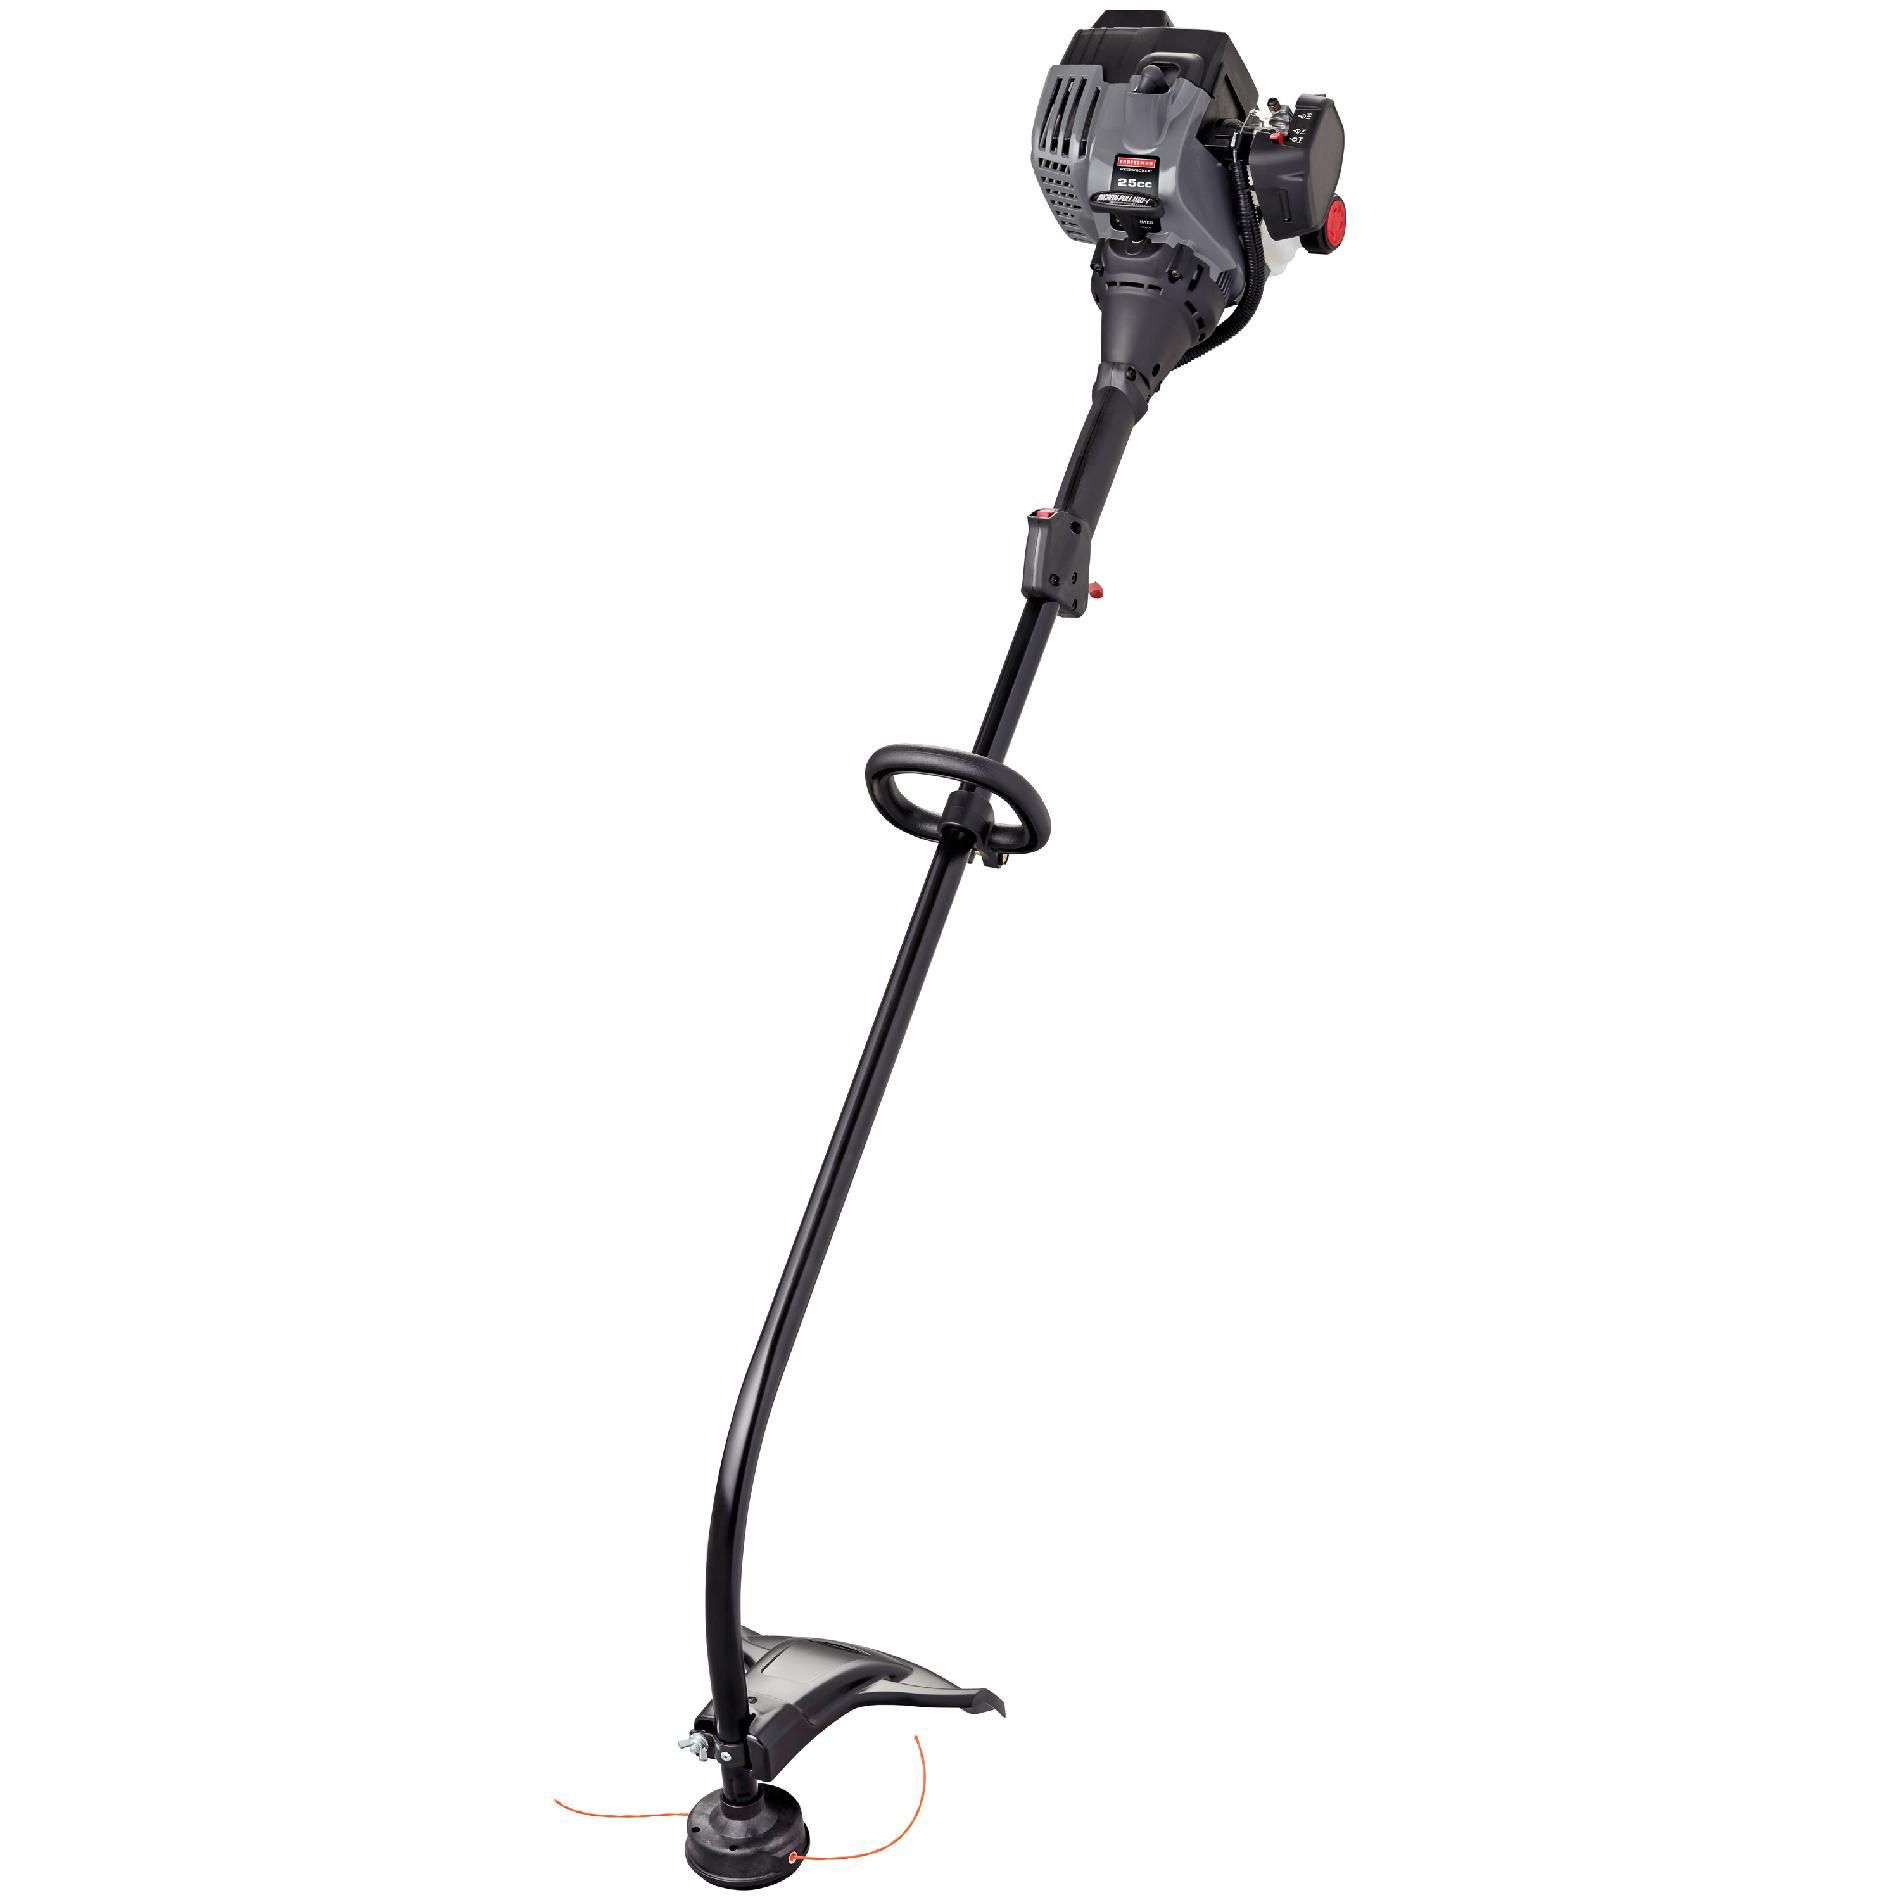 Image of Craftsman 71137 25cc 2-Cycle WeedWacker Gas Trimmer, Gray, Powder coated steel frame